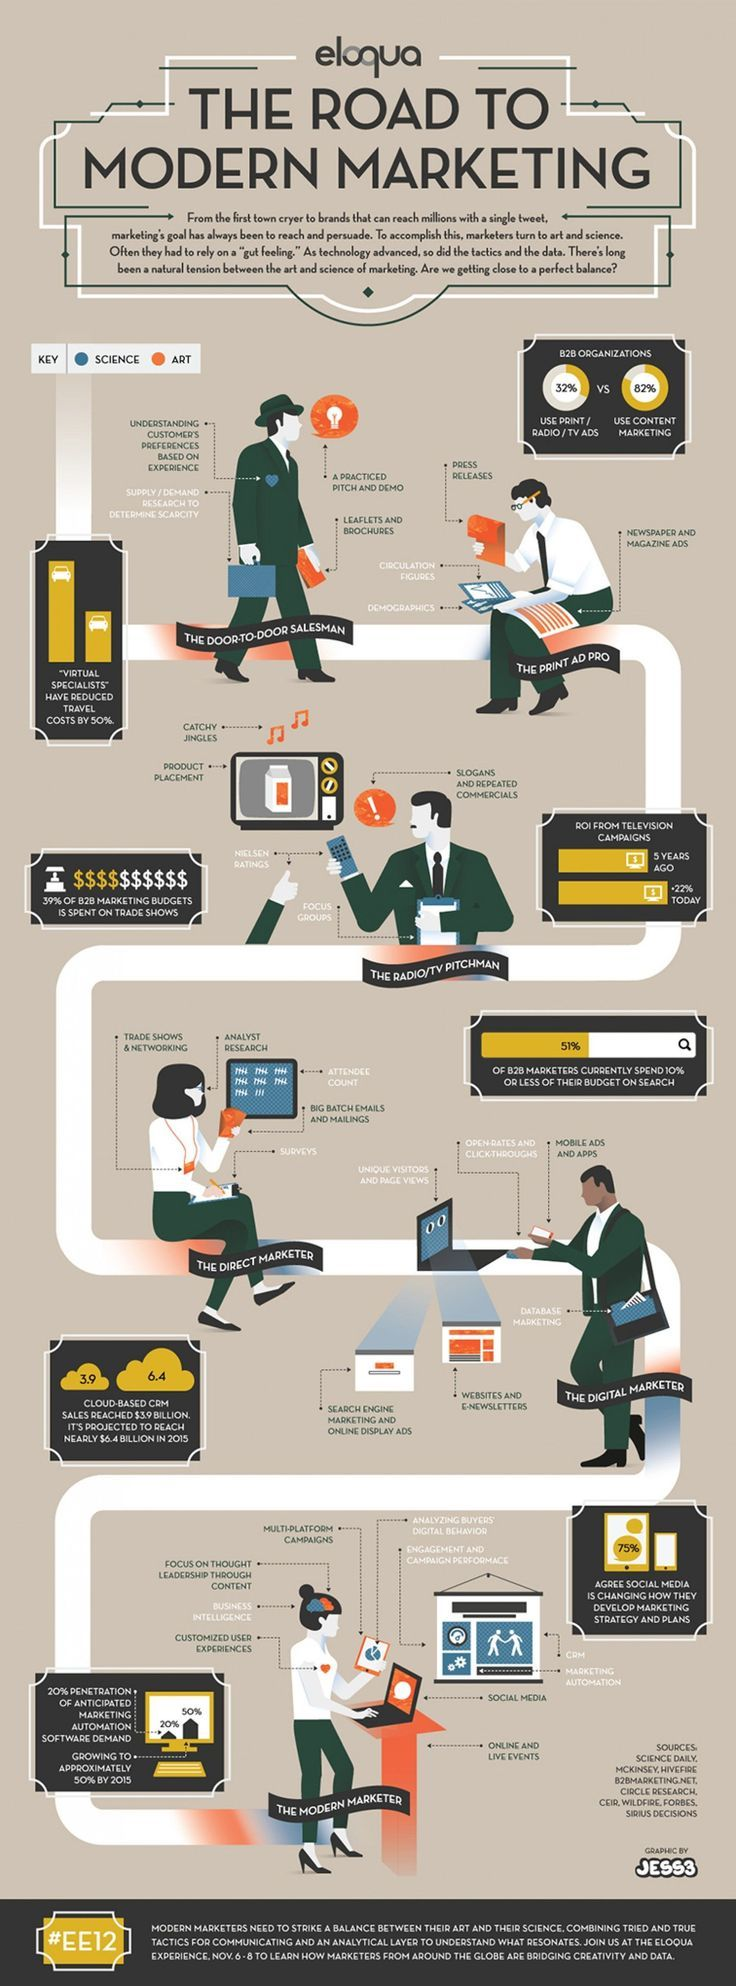 Pin by Into It on business (With images) Infographic